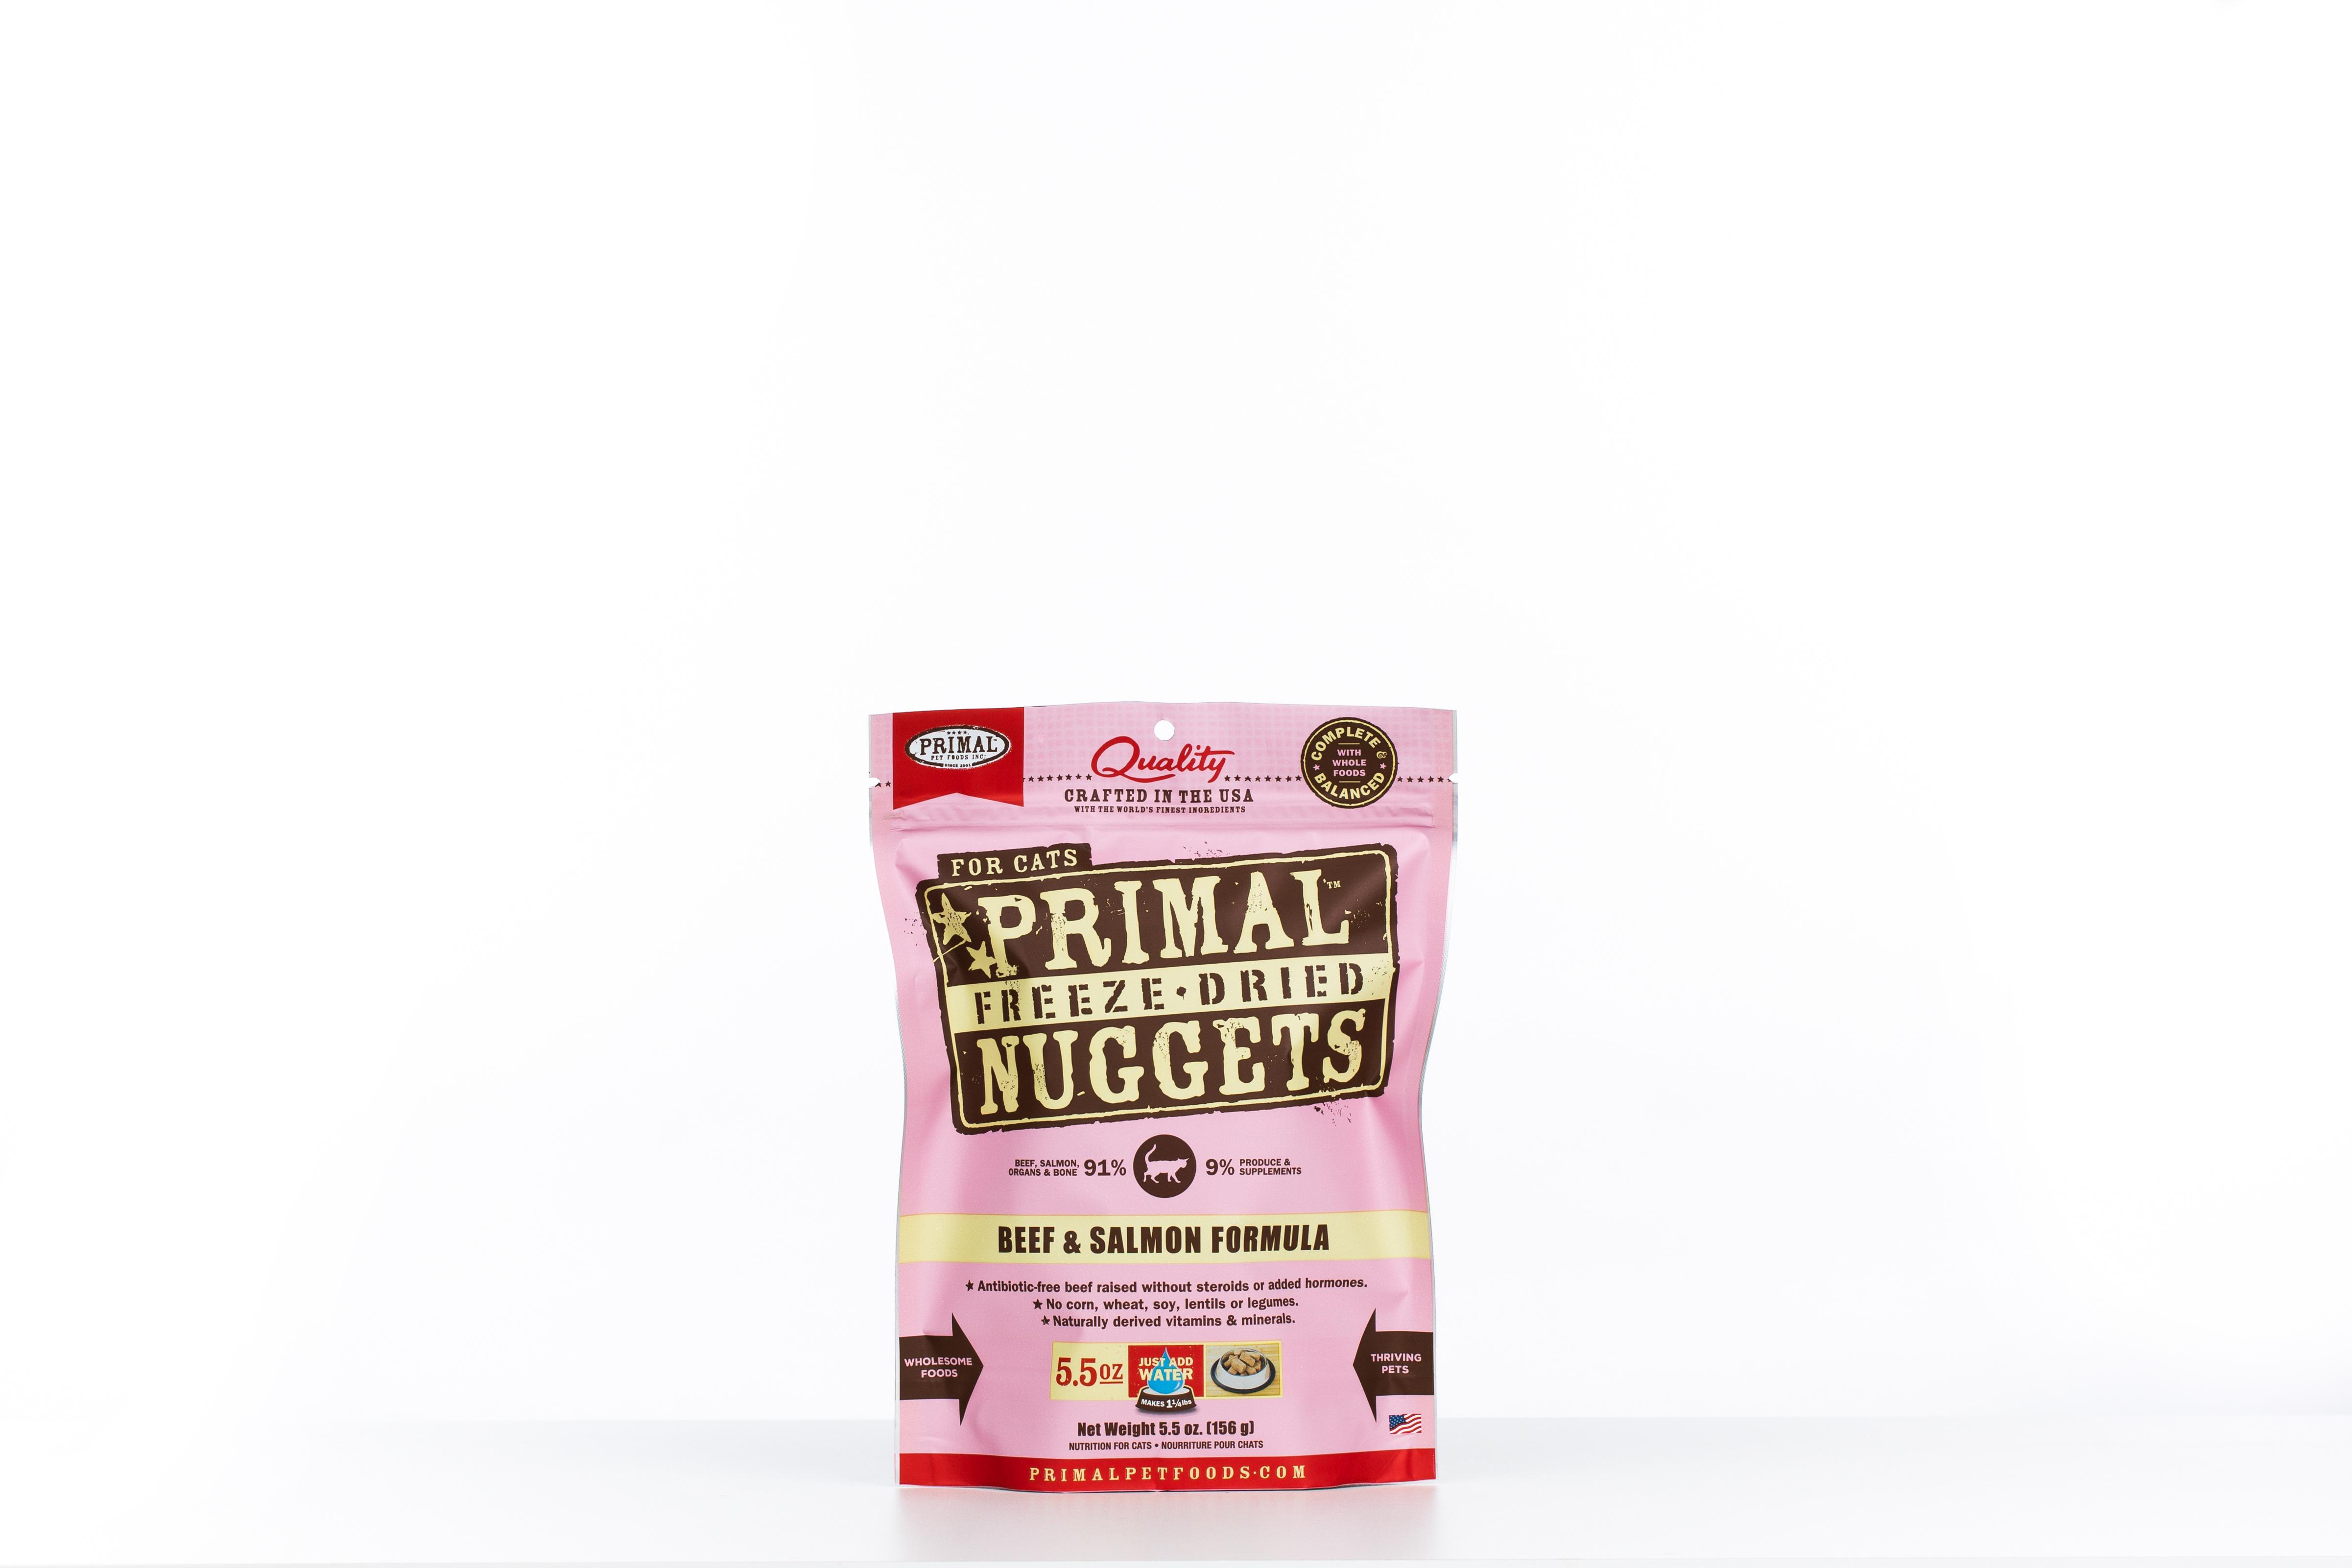 Primal Beef & Salmon Formula Nuggets Grain-Free Raw Freeze-Dried Cat Food Image